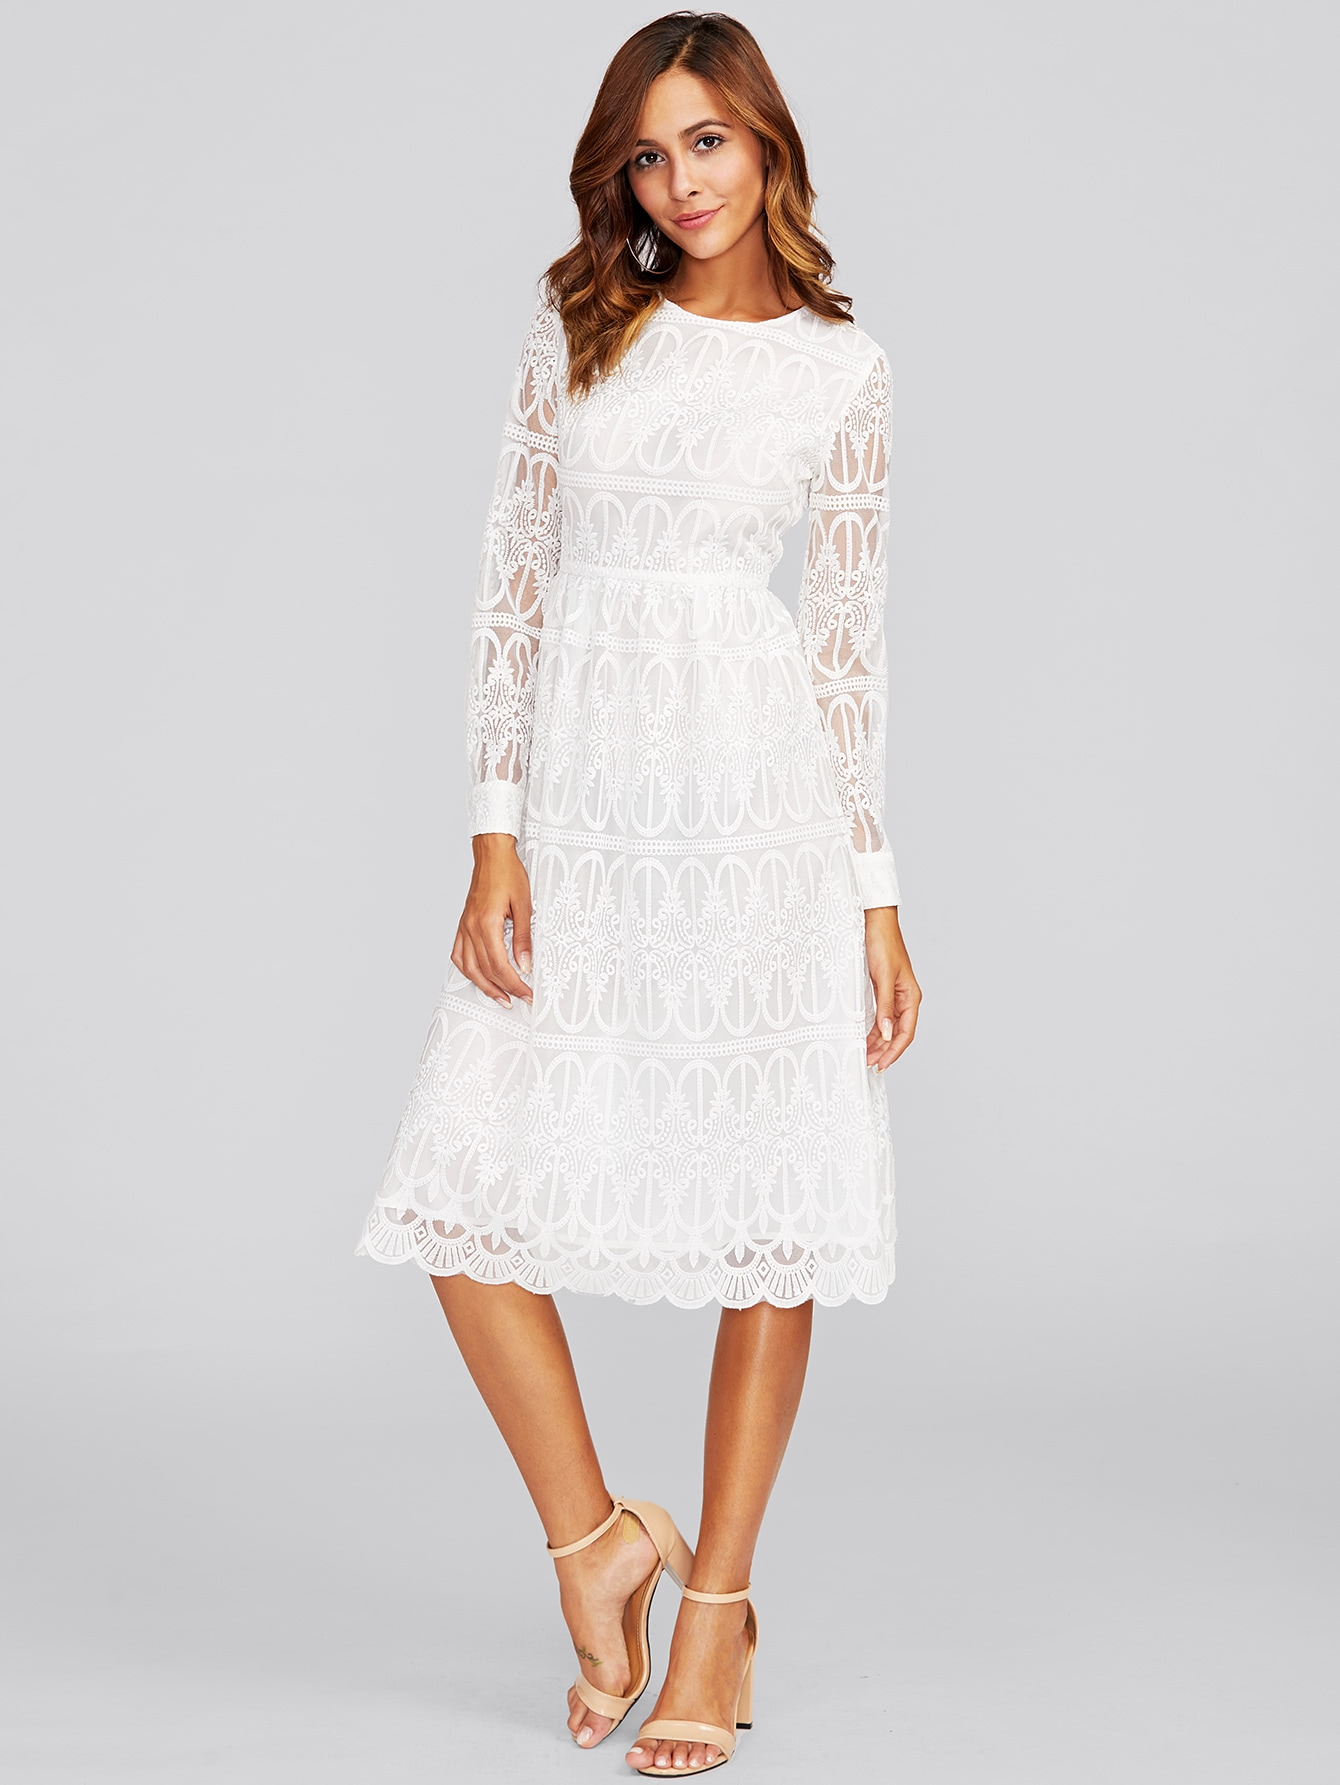 Scallop Hem Embroidered Mesh Overlay Dress ruffle waist zip back scallop hem embroidered gingham skirt